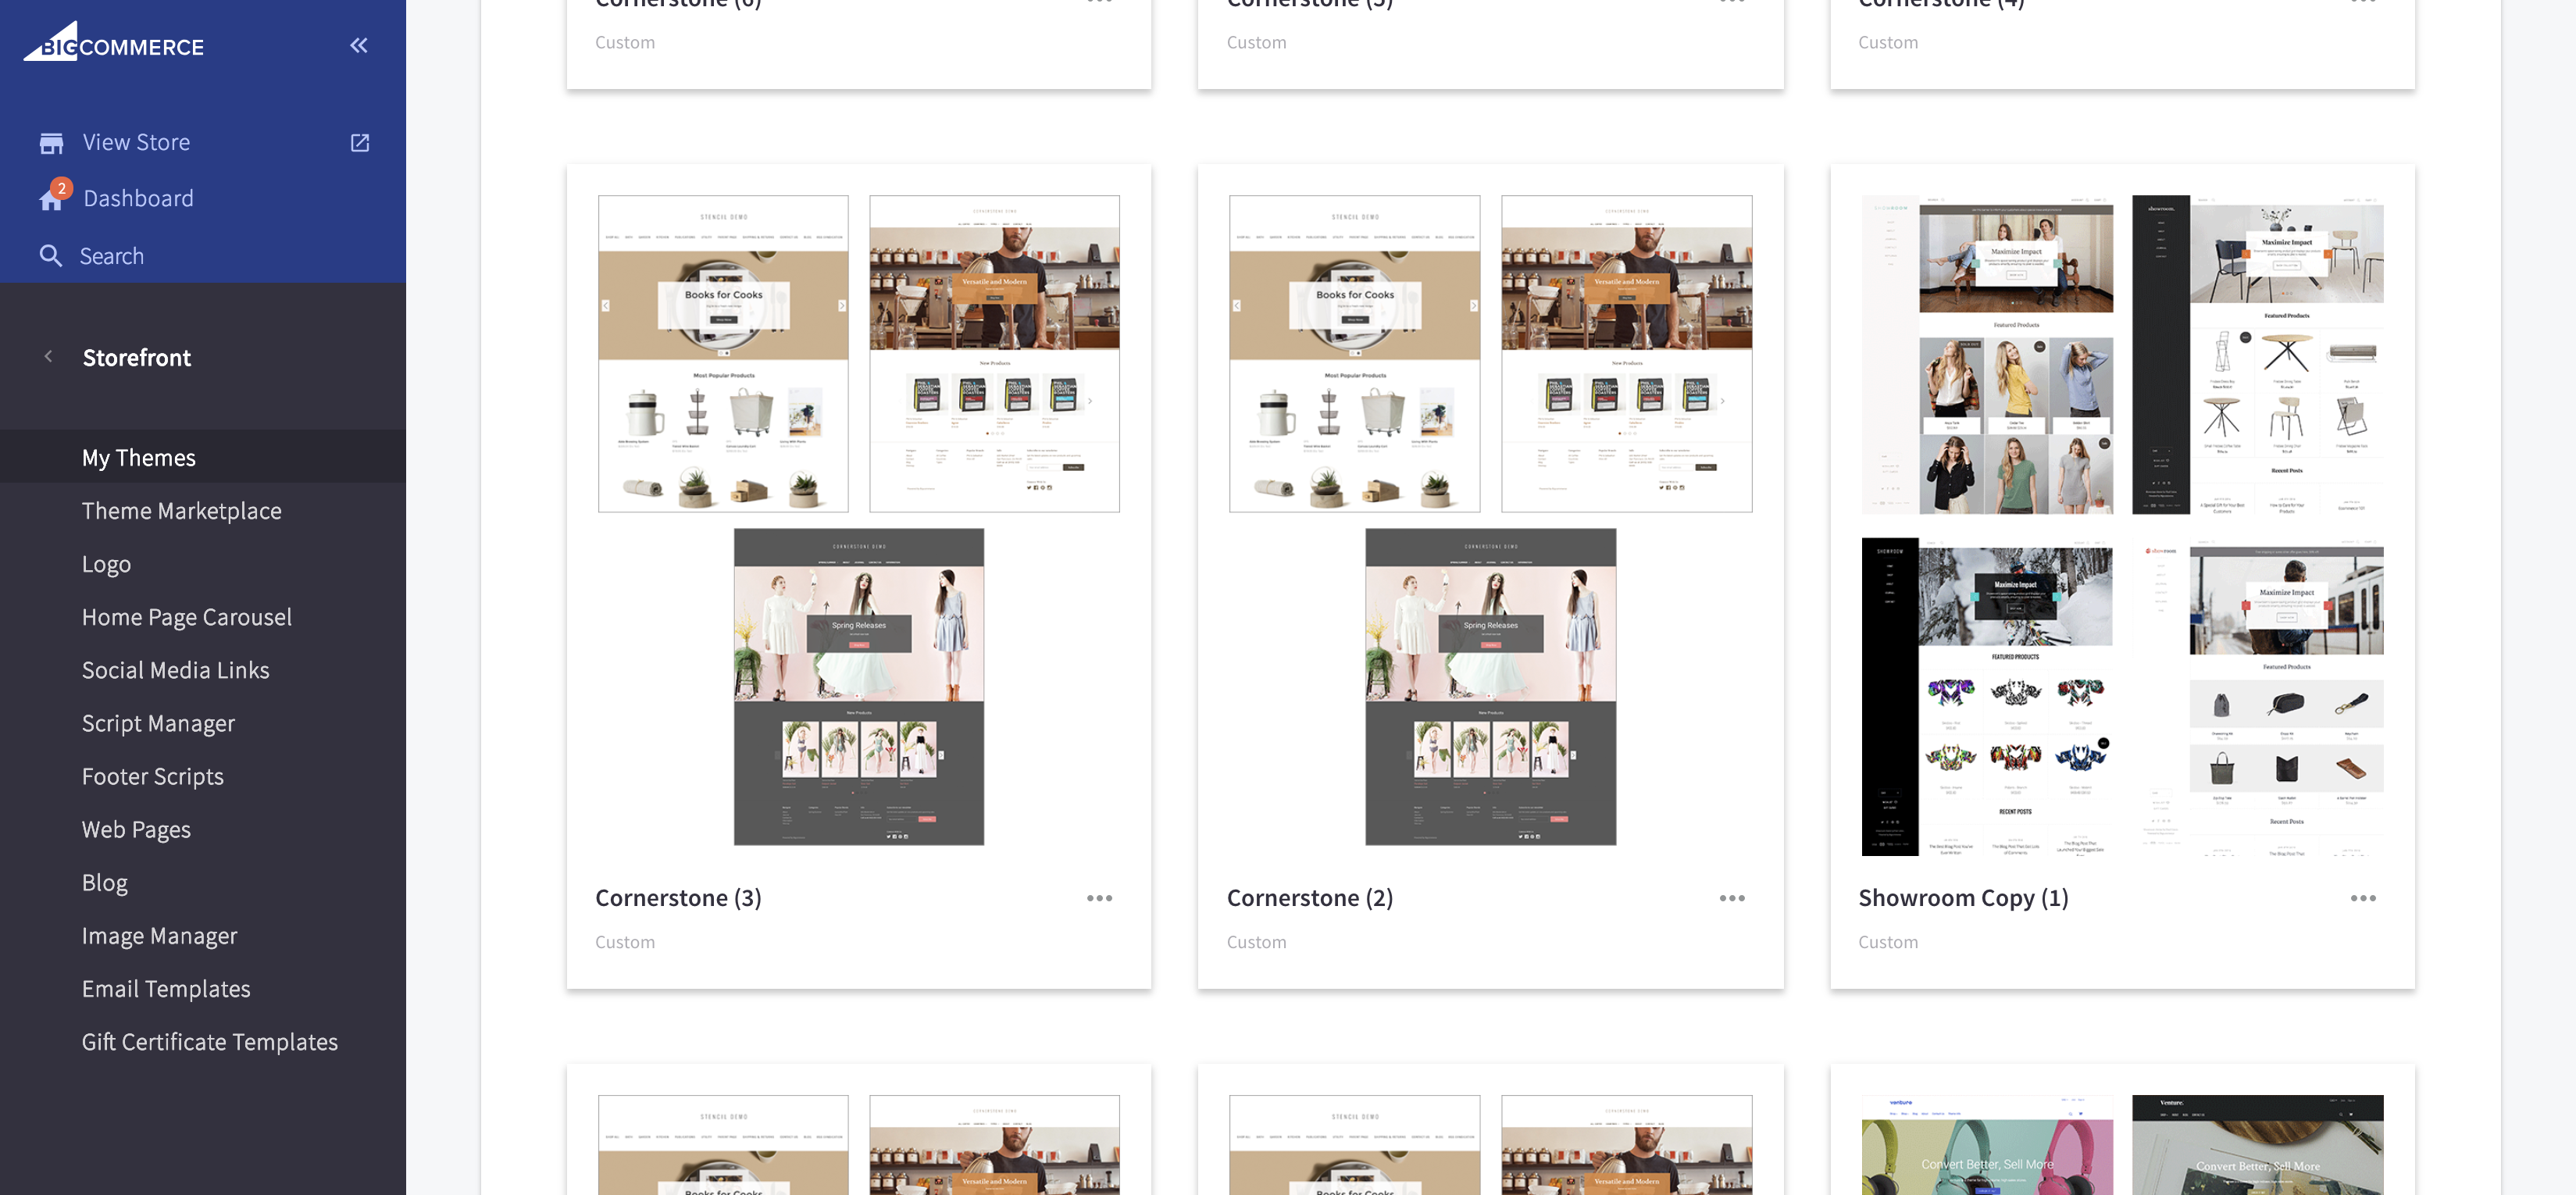 Storefront › My Themes